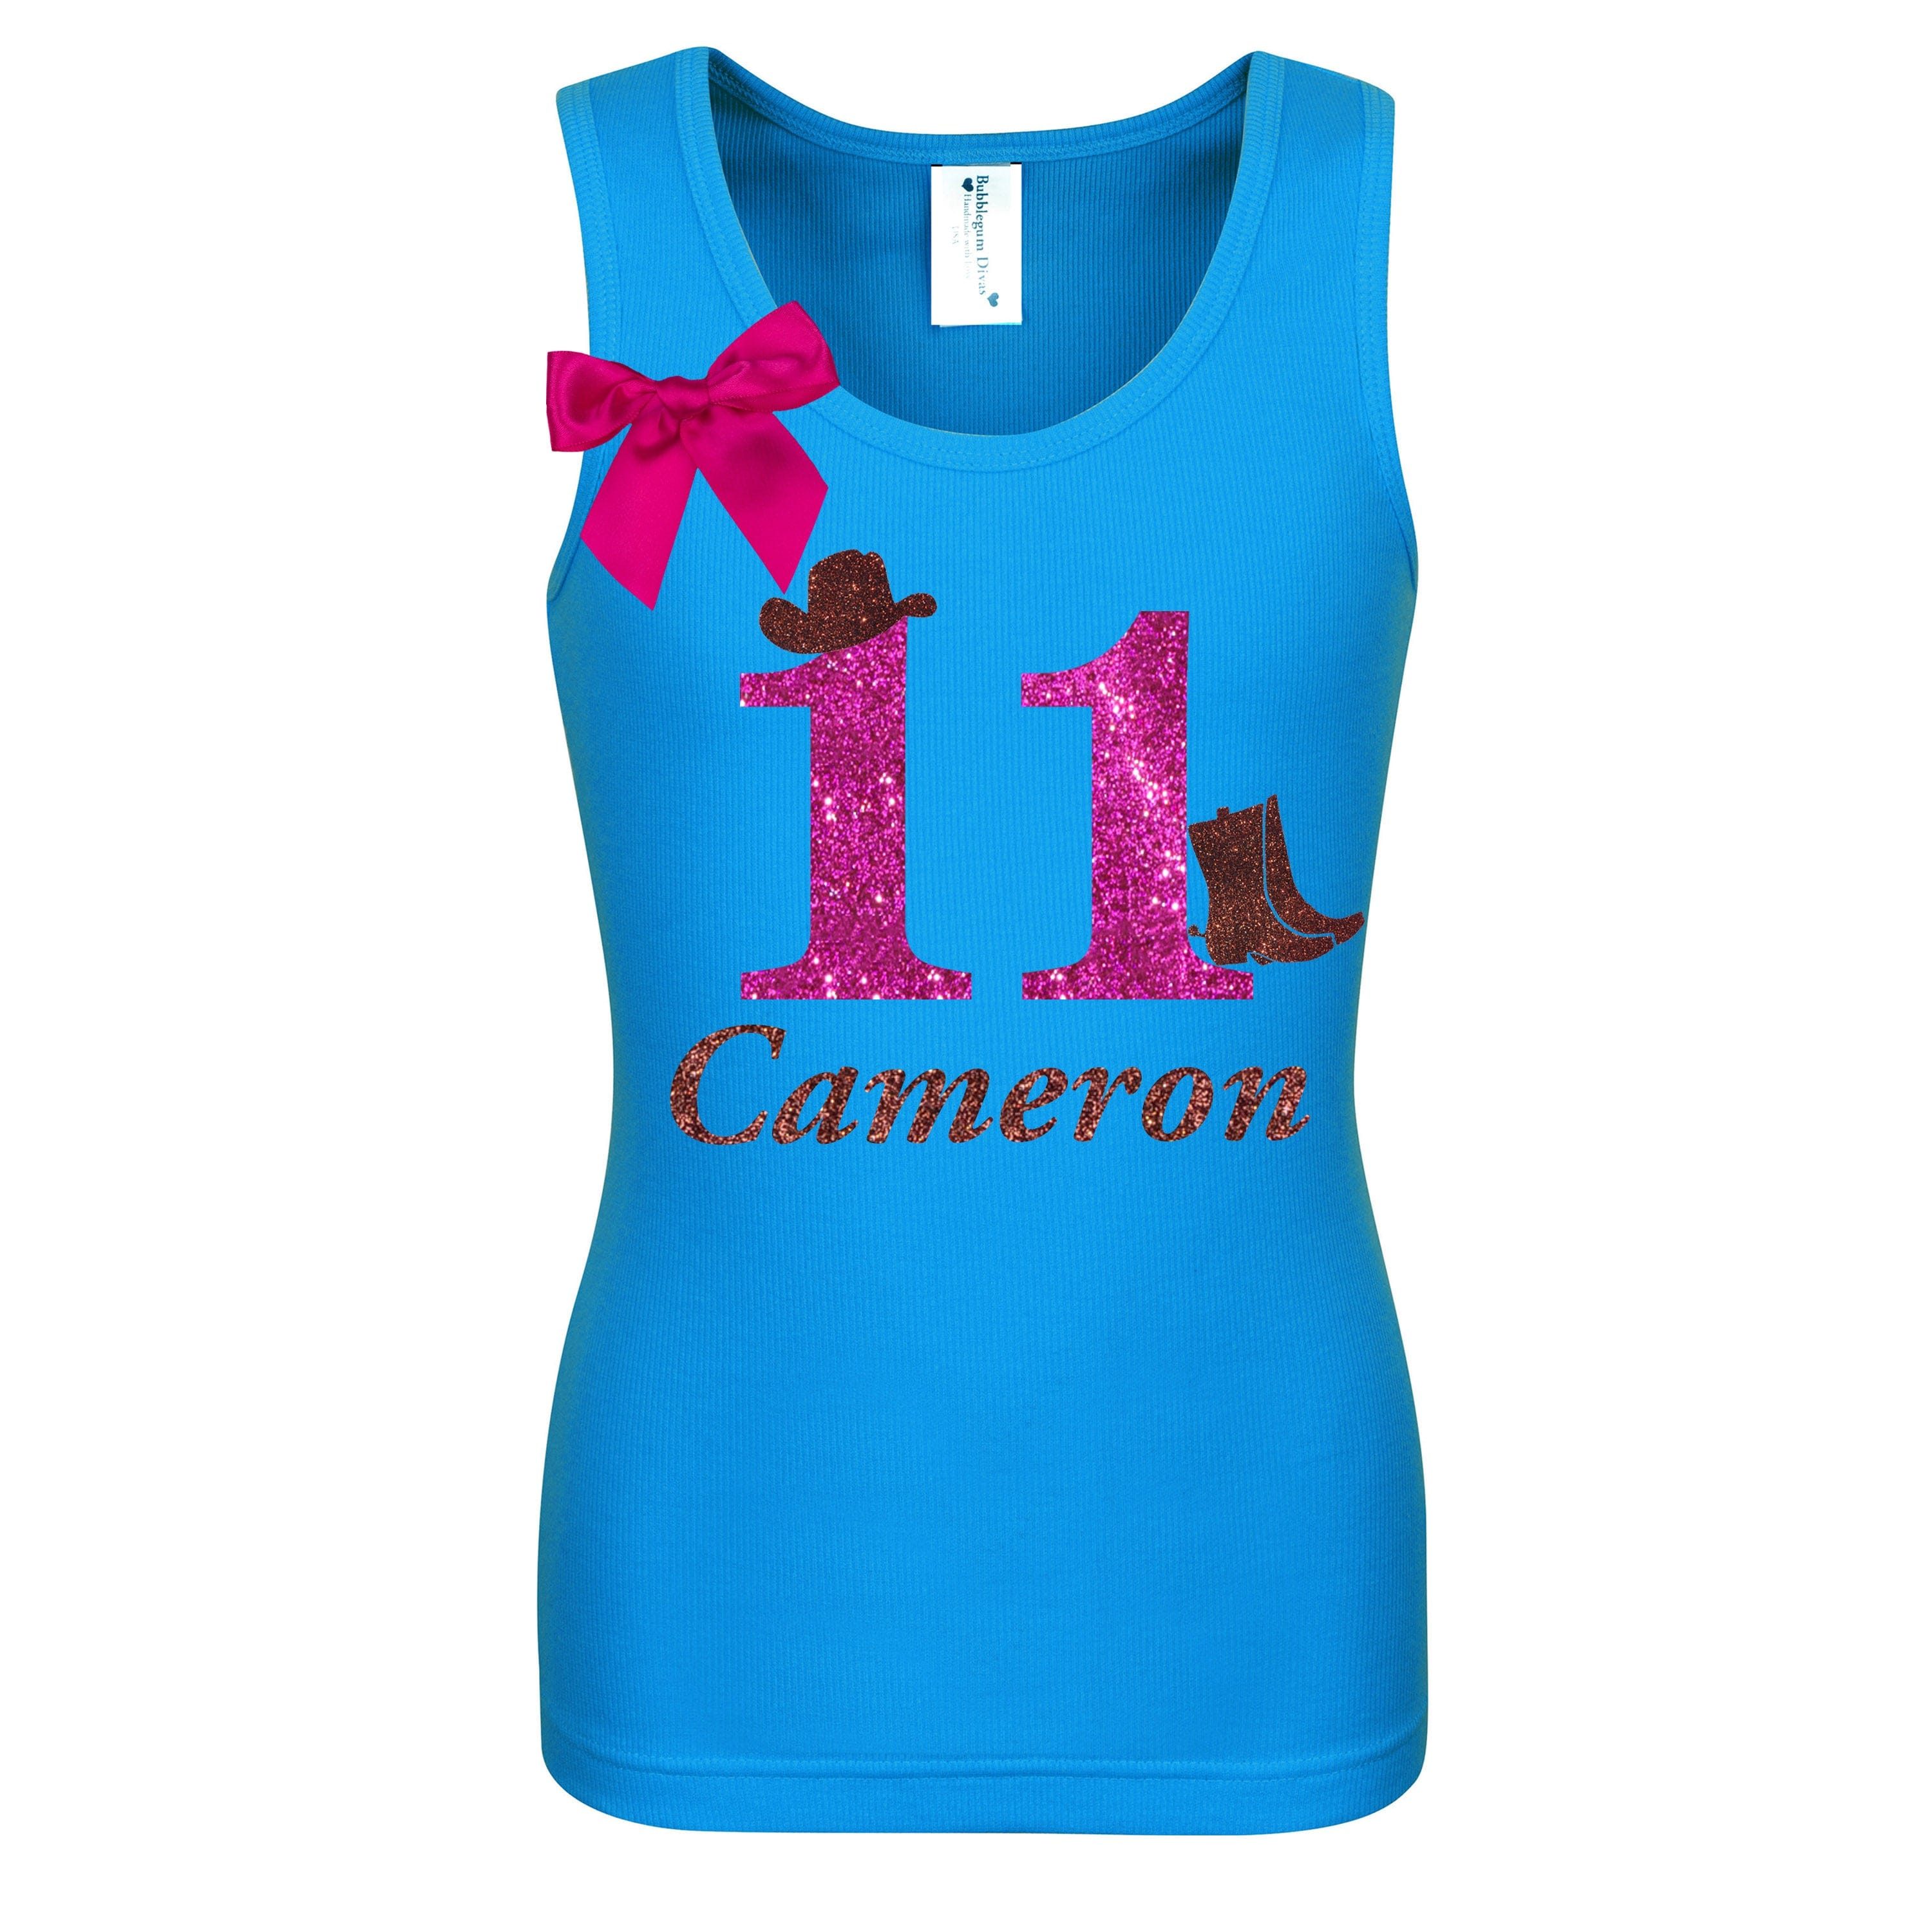 11th Birthday Cowgirl Shirt Personalized Name Age 11 - Shirt - Bubblegum Divas Store